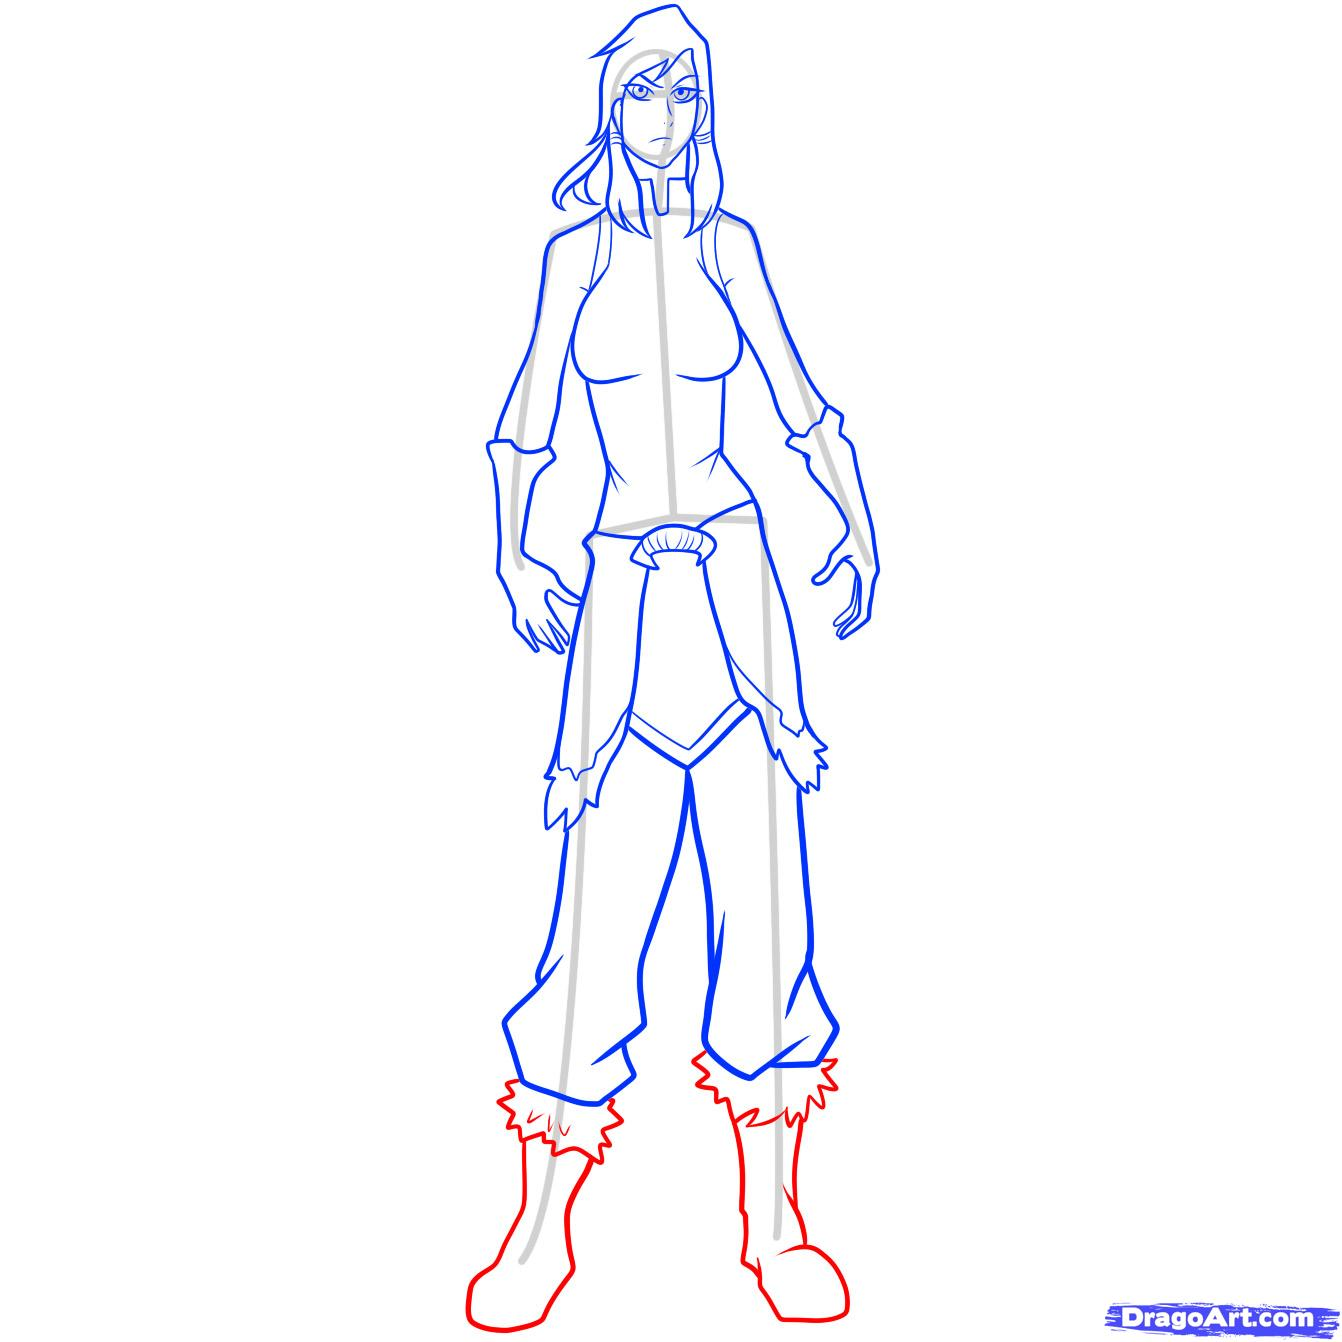 Drawn boots front view 9 Step Korra korra to